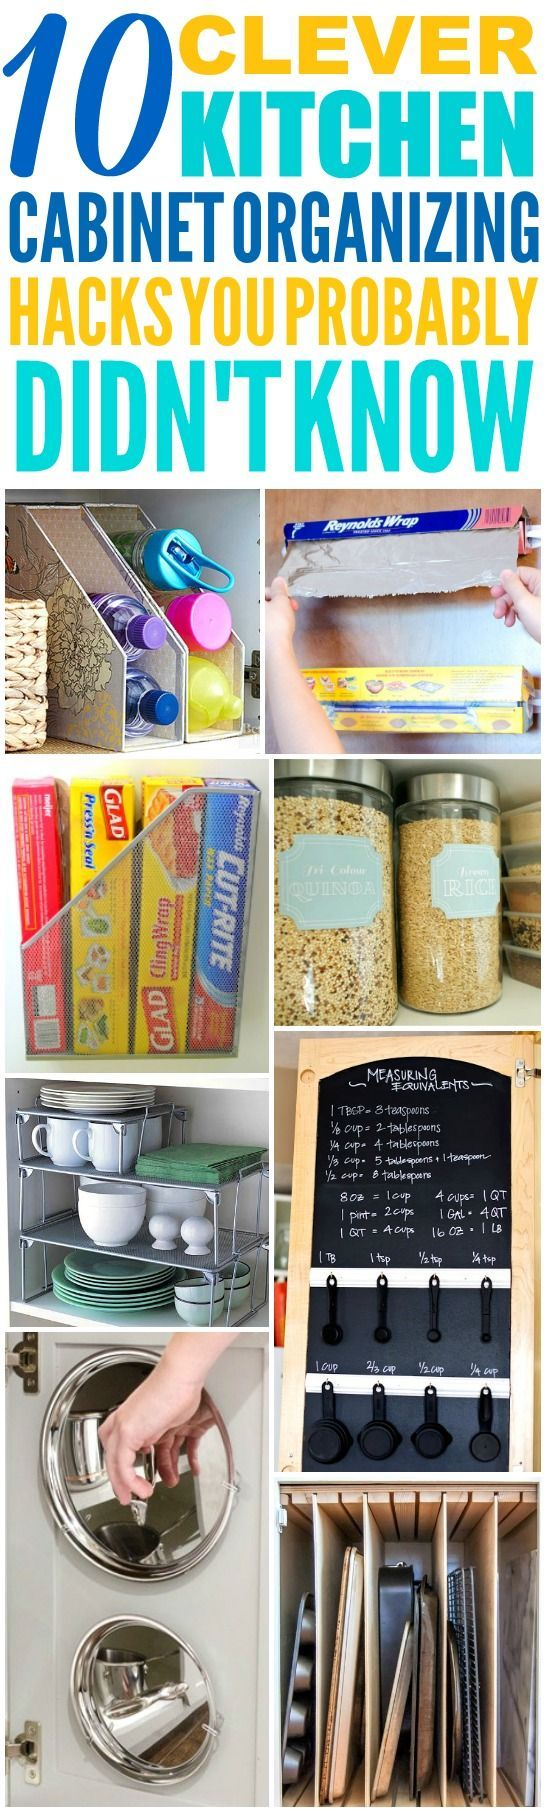 Best 25 bra organization ideas on pinterest bra storage for Kitchen organization hacks